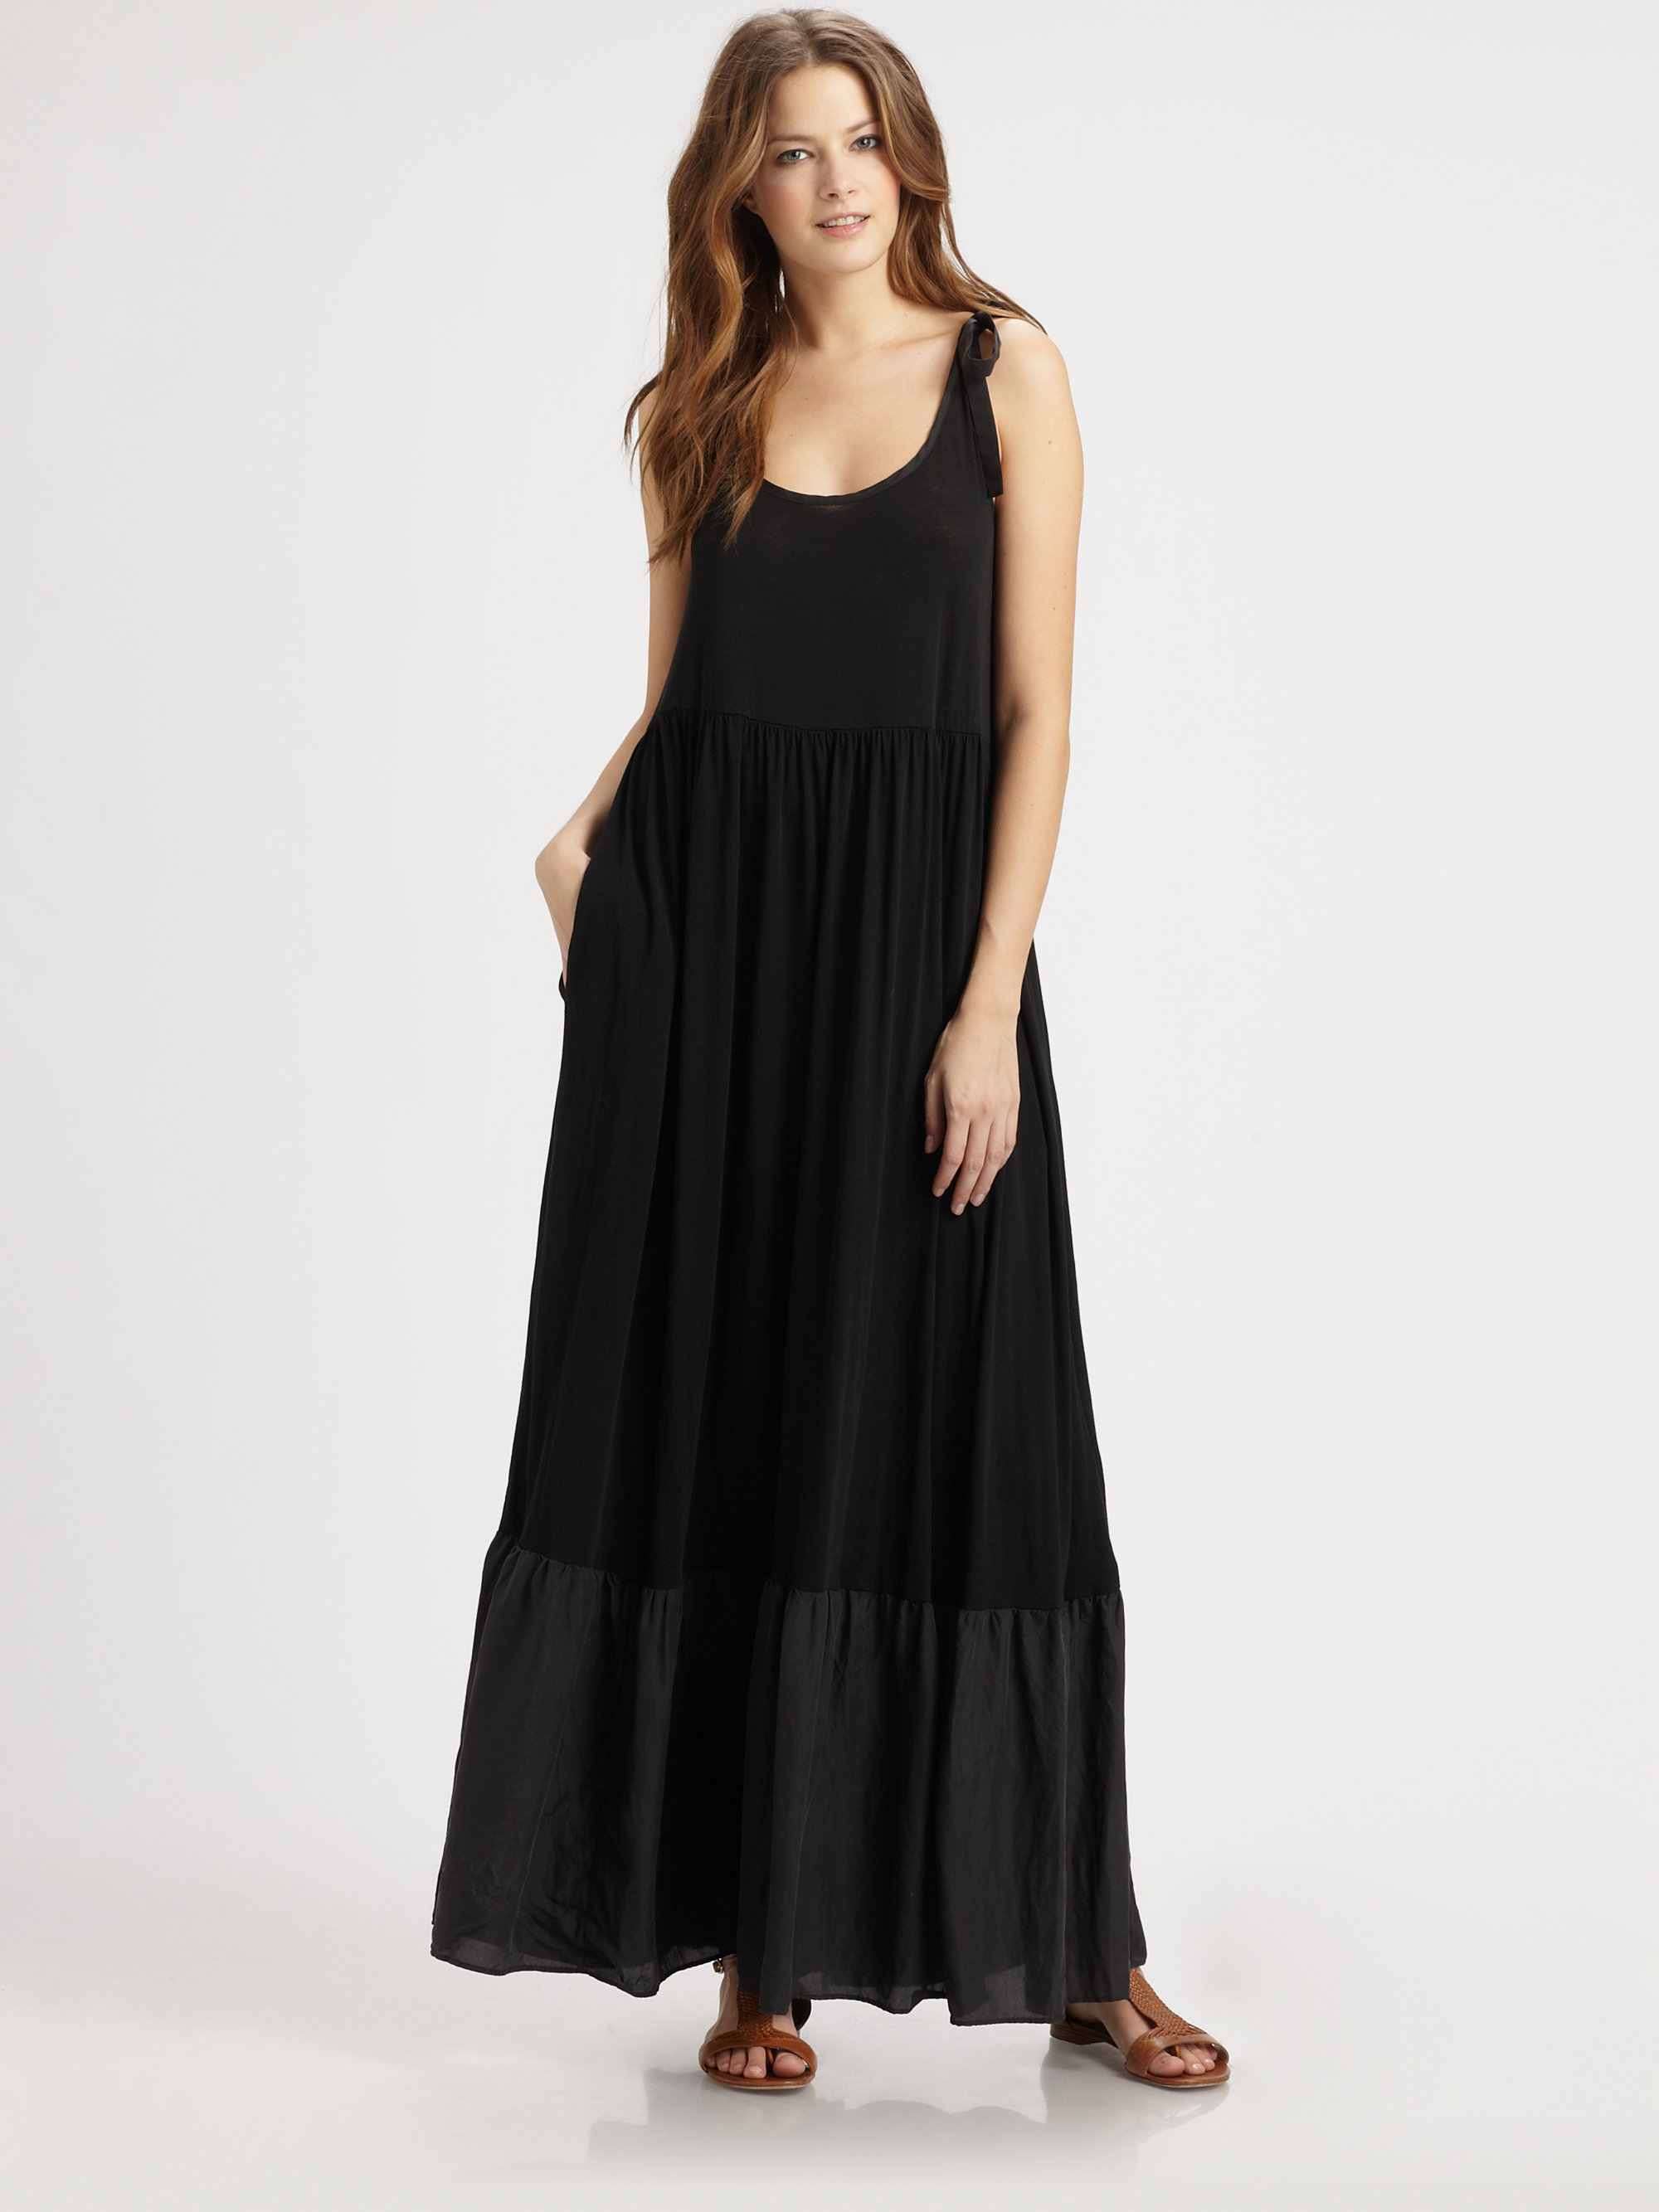 Dkny Maxi Tank Dress in Black | Lyst